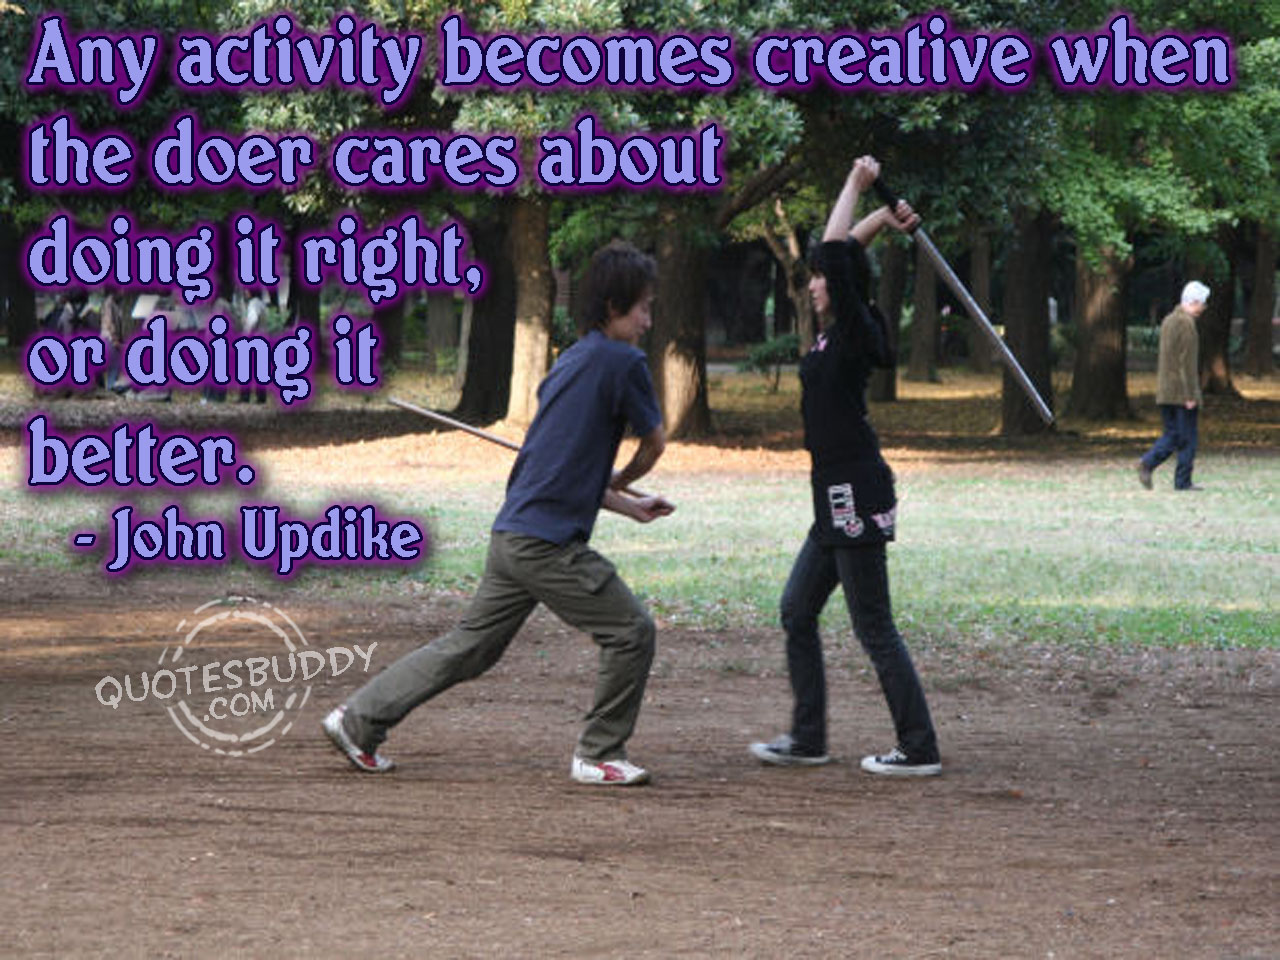 Any activity becomes creative when the doer cares about doing it right or better. John Updike